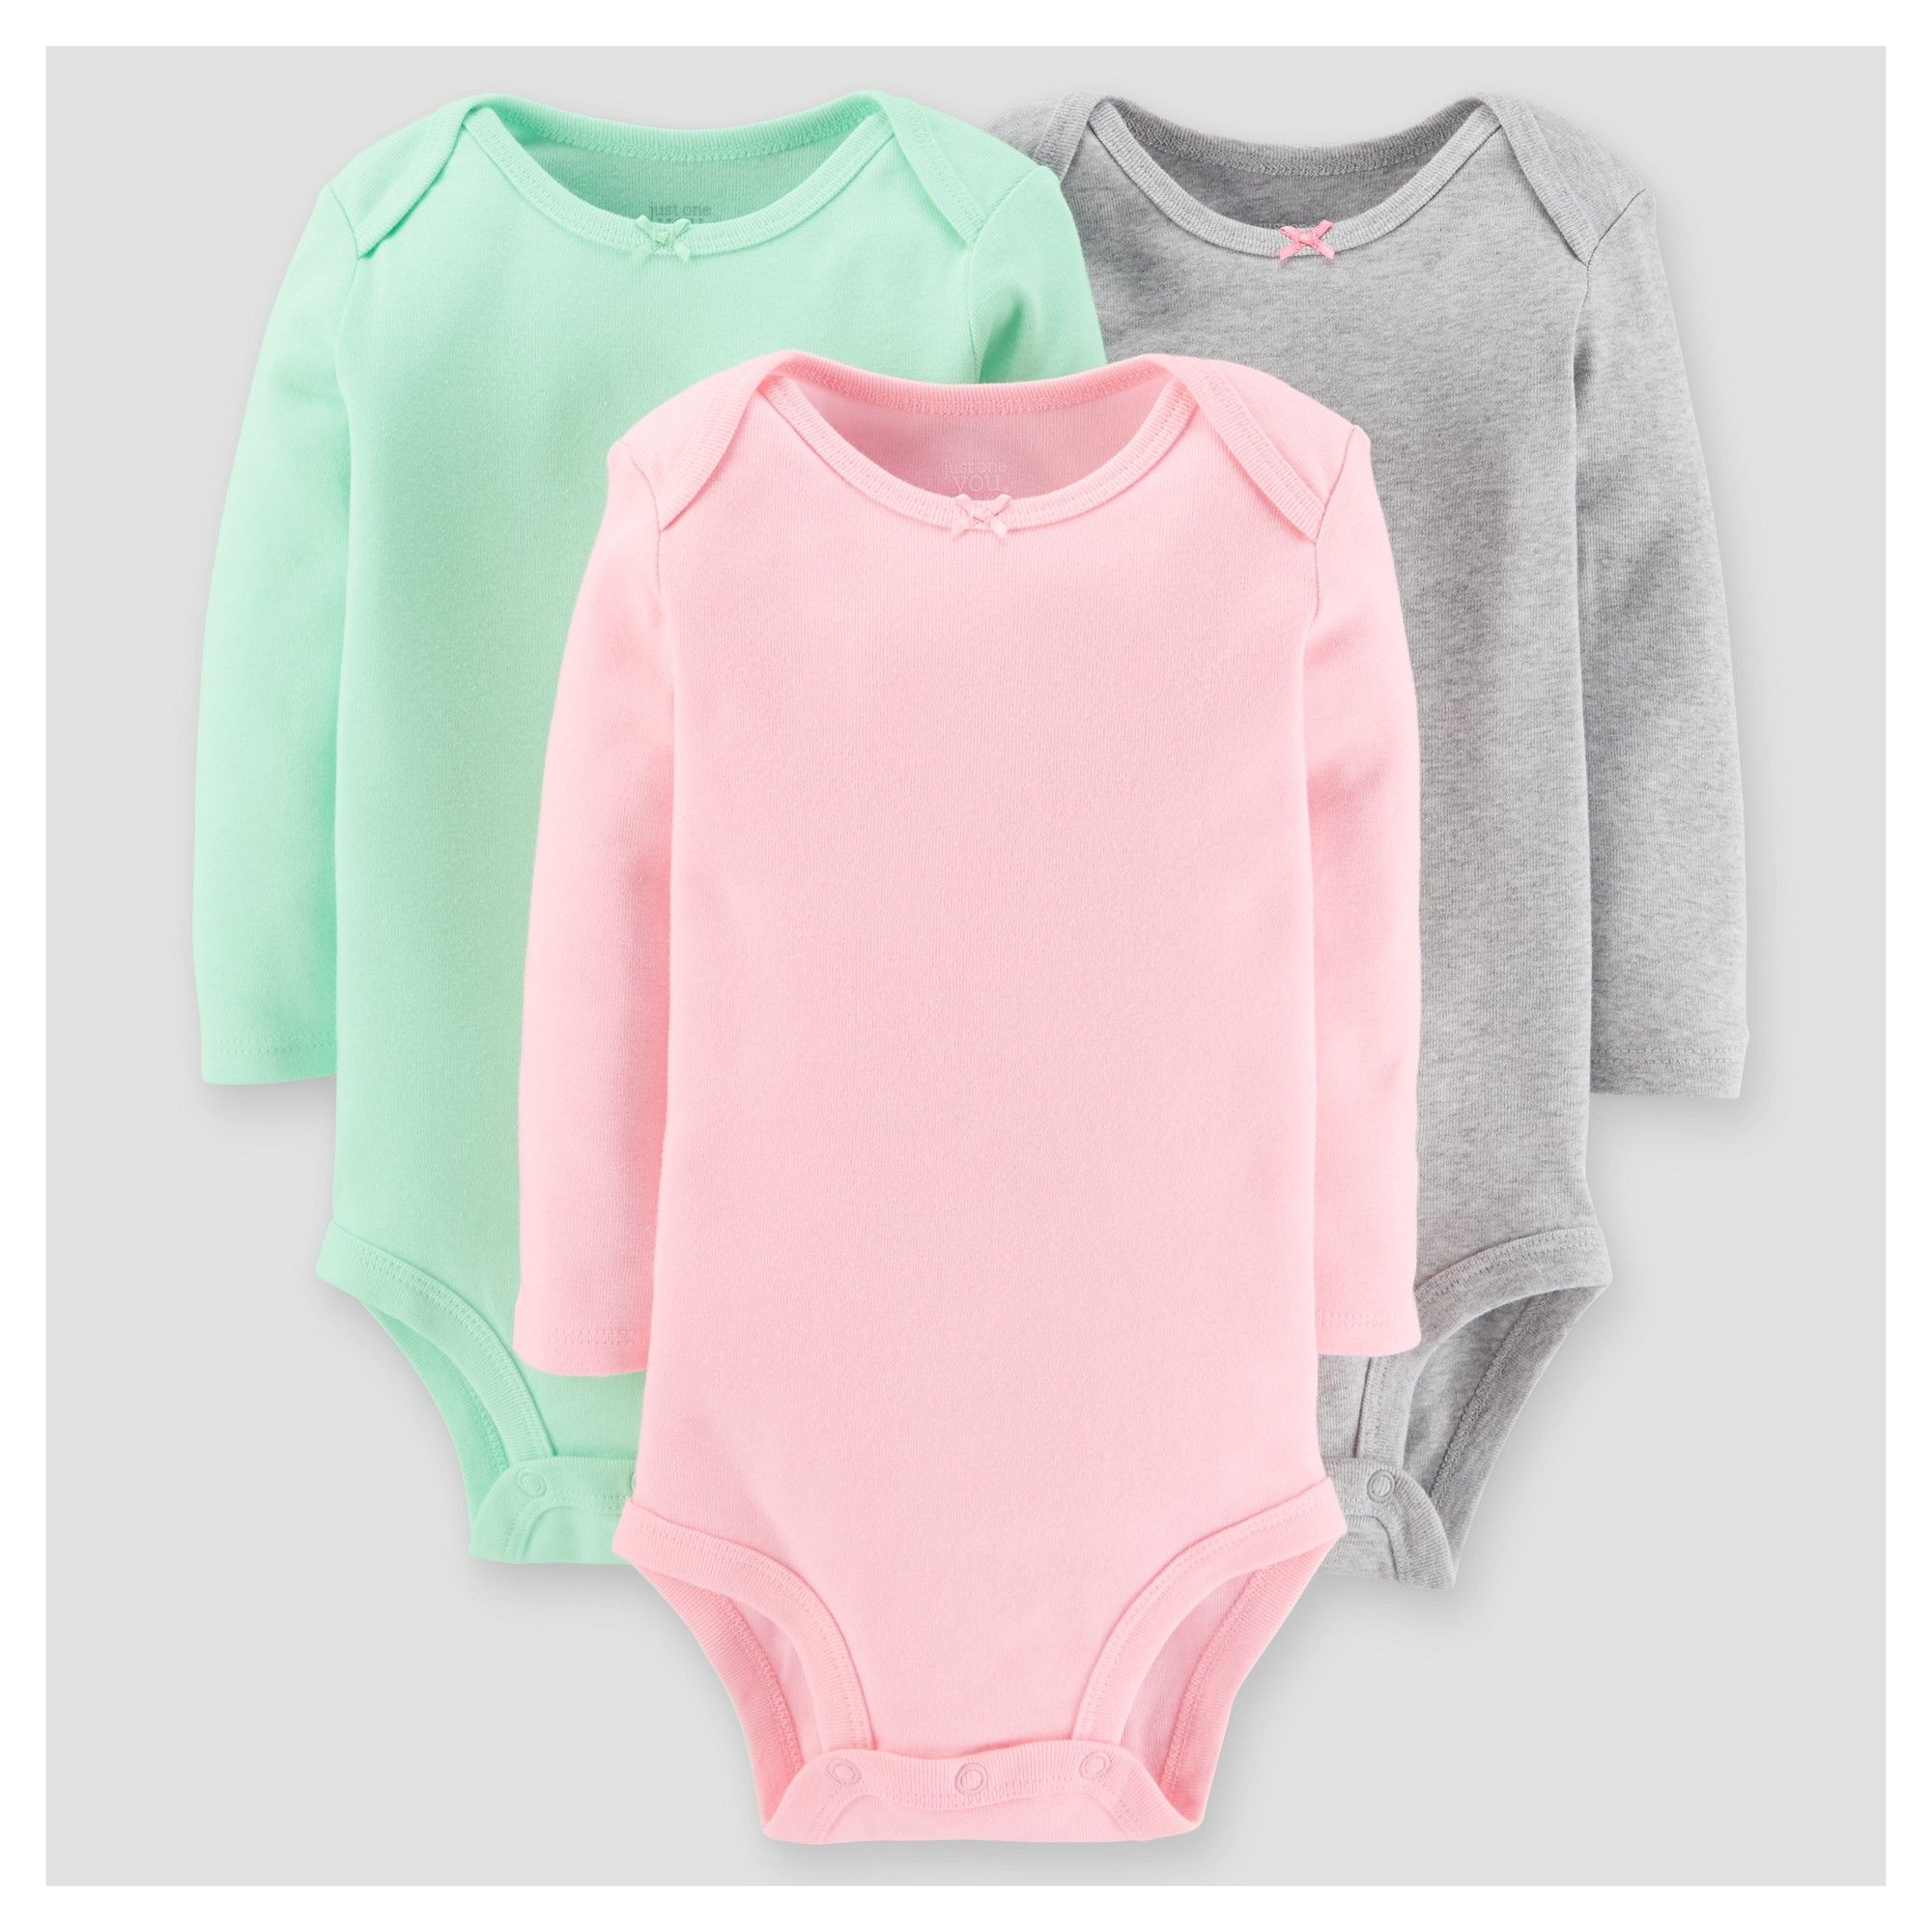 a1e2b2ae91e1 Baby Girls  3pk Long Sleeve Sold Bodysuit - Just One You Made by ...